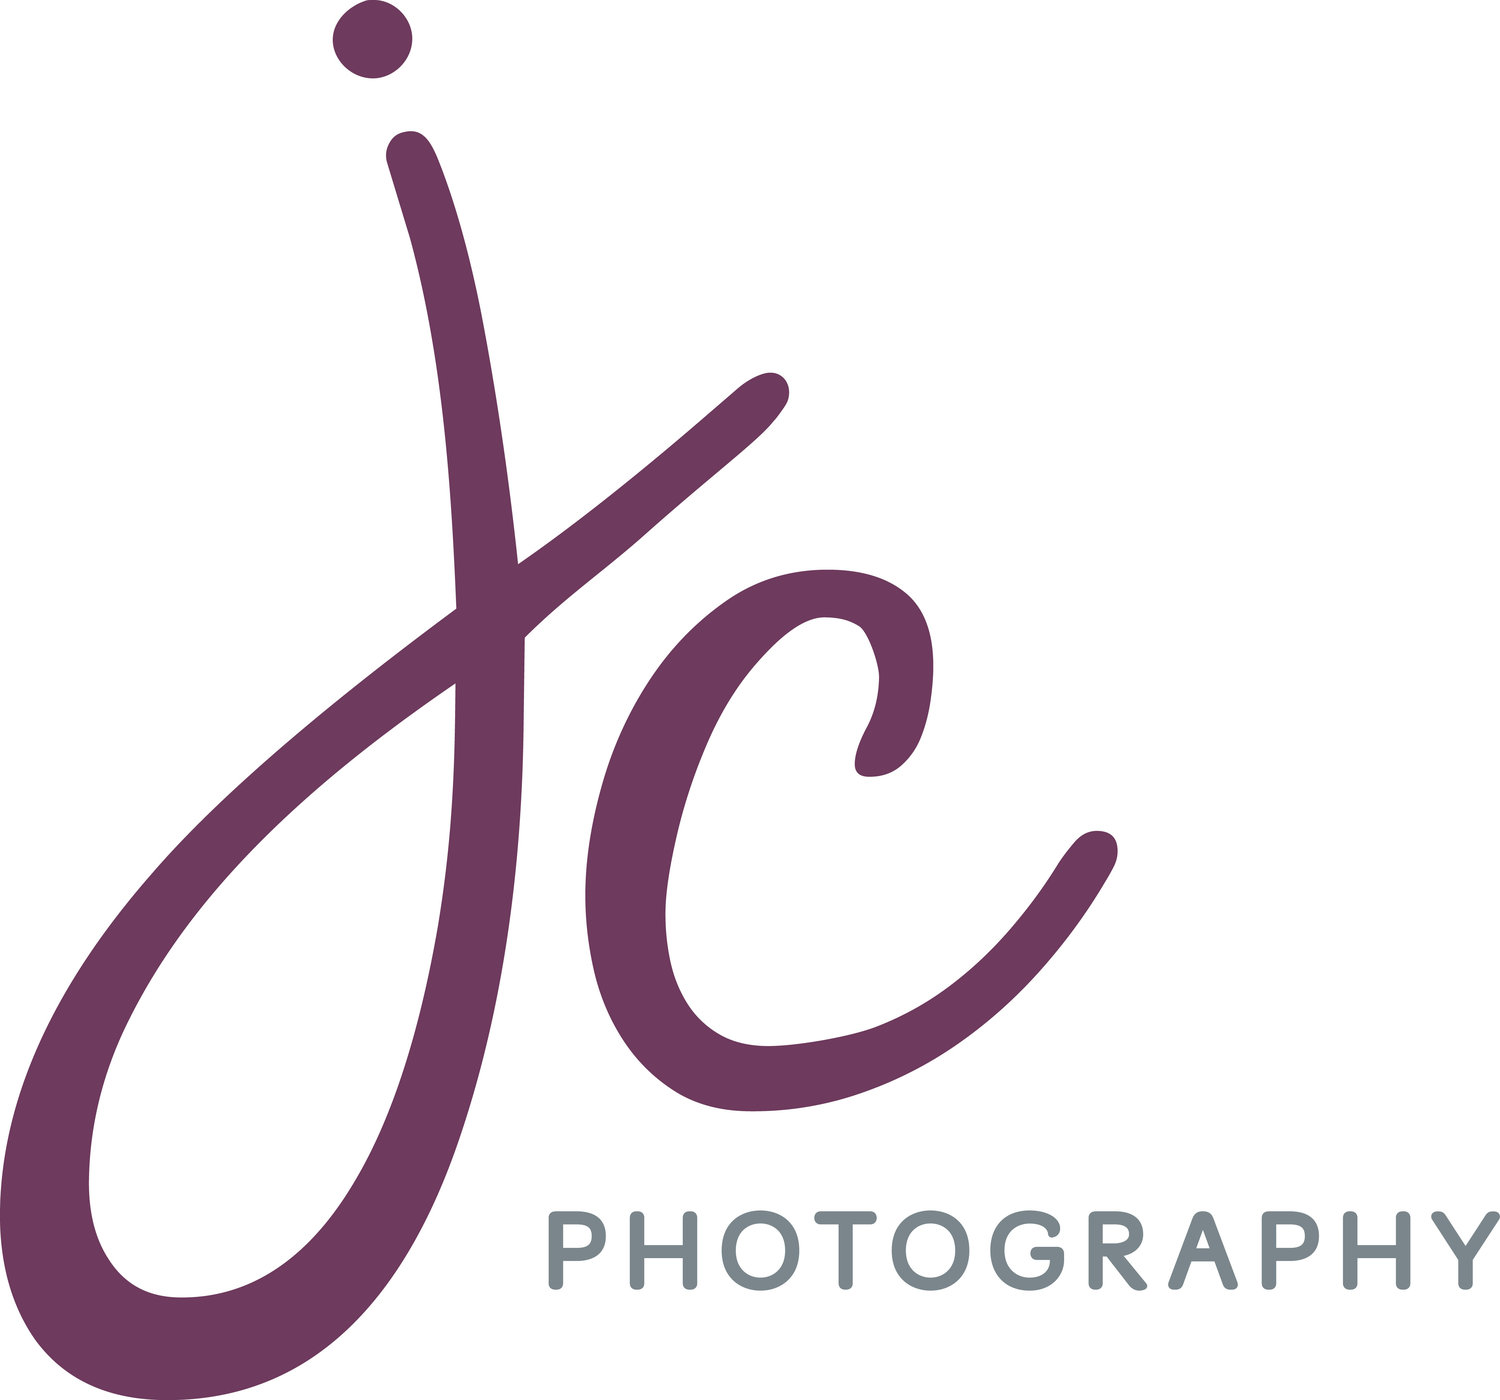 JC Photography, Inc.